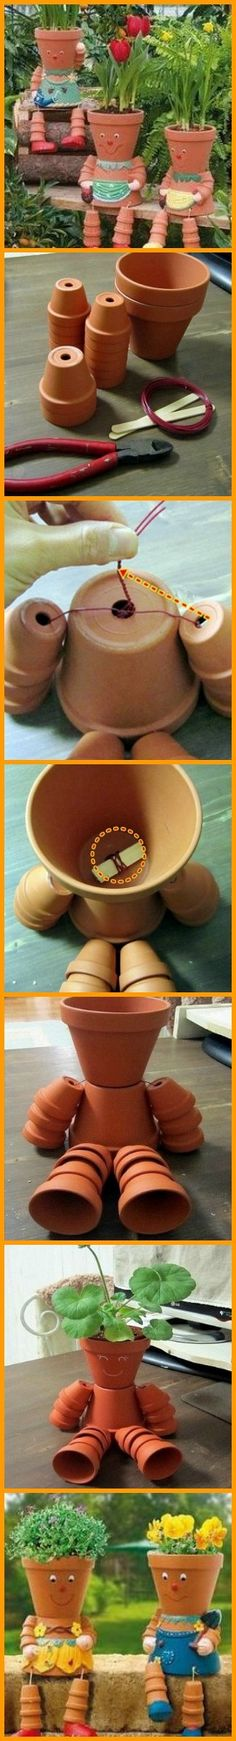 Get the kids interested in gardening by making this DIY clay pot flower people! http://theownerbuildernetwork.co/vs03